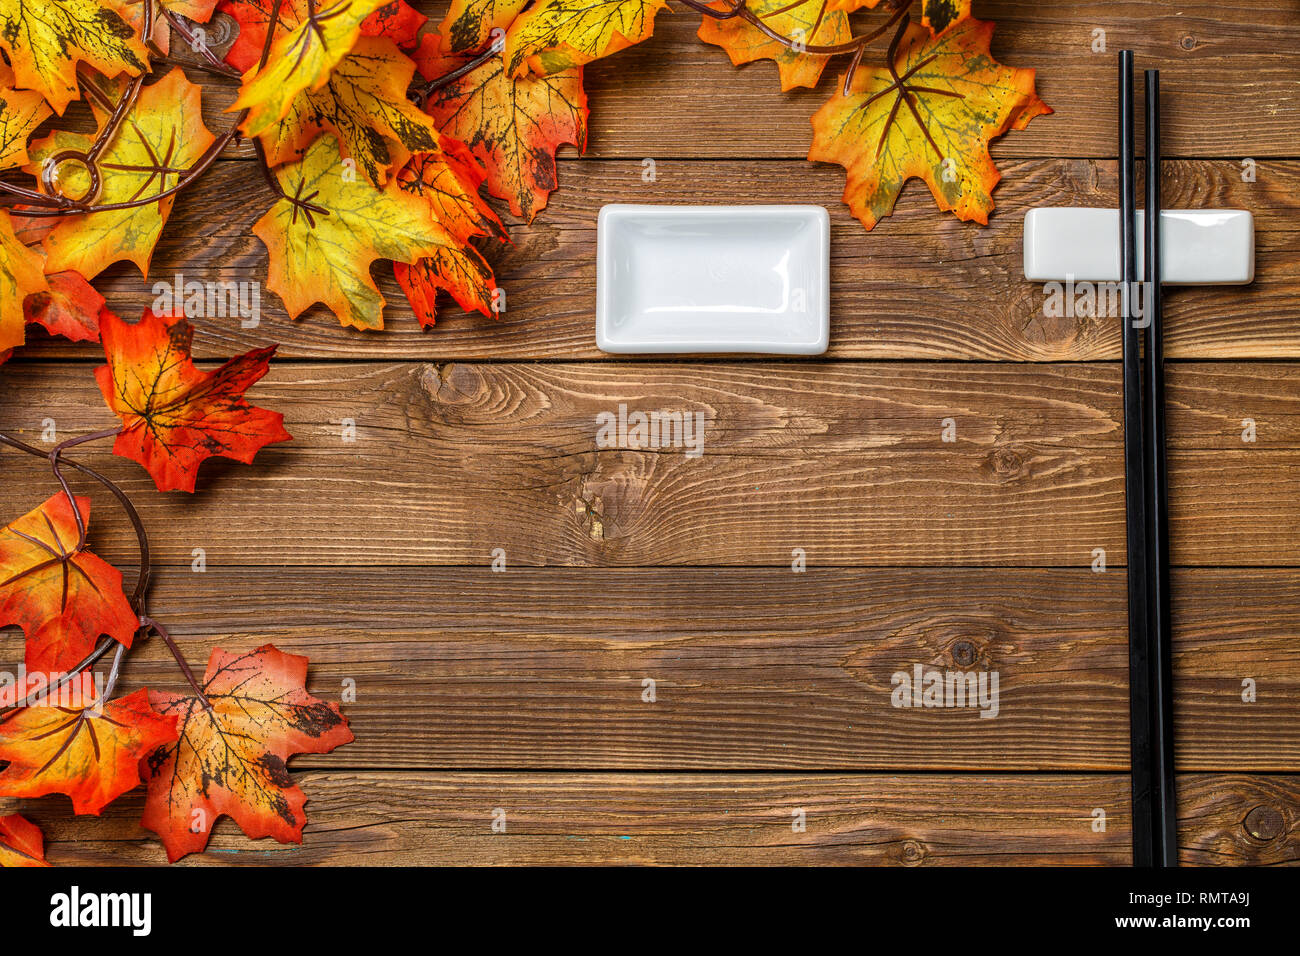 Wooden table with maple leaves - Stock Image